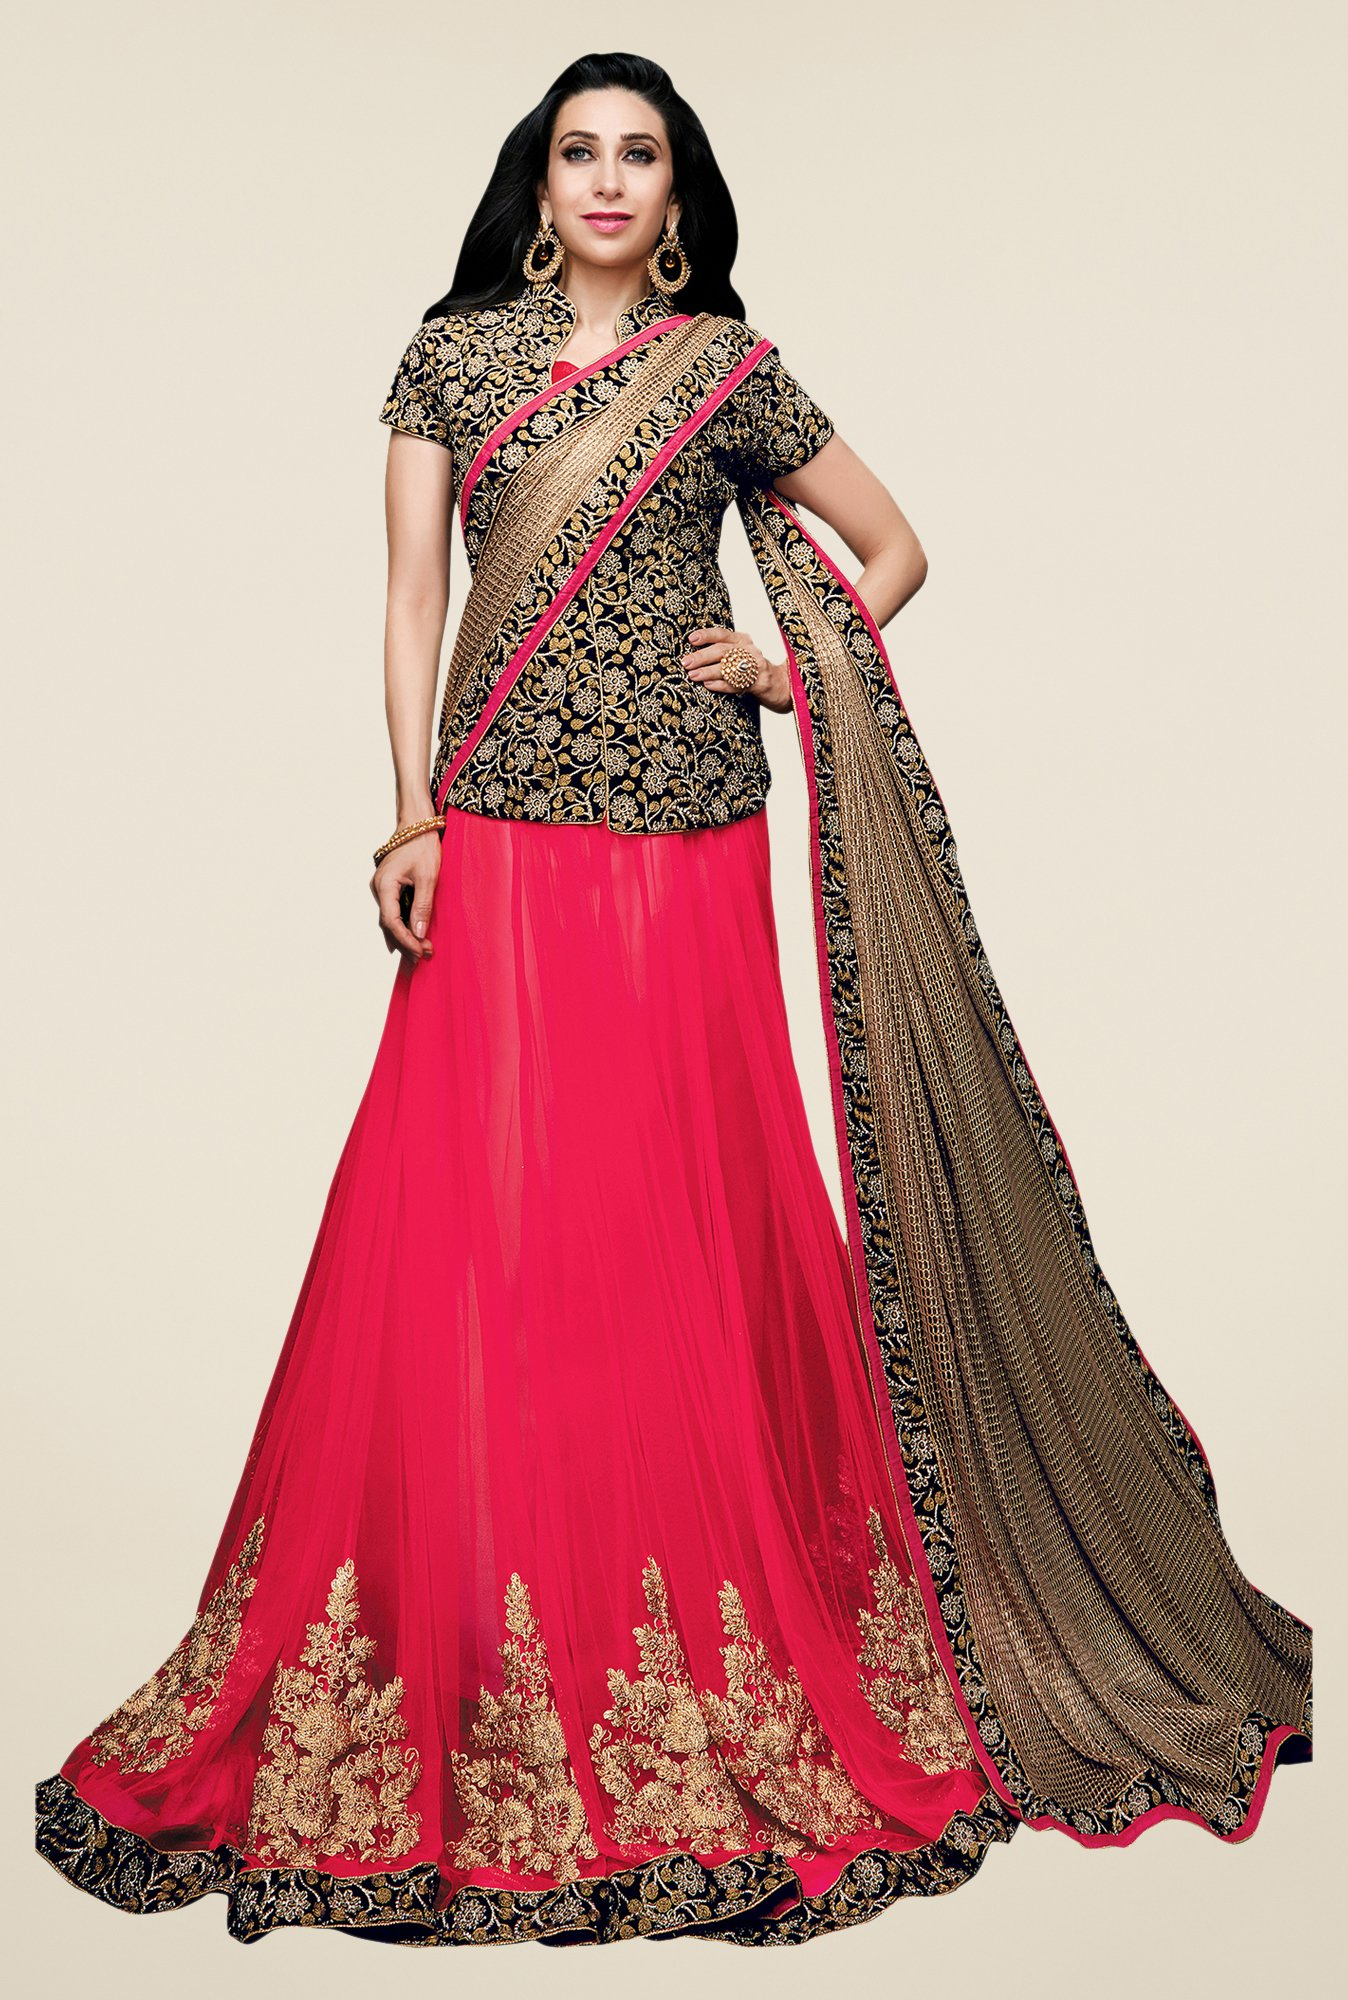 Shonaya Pink & Golden Net & Lycra Embroidered Lehenga Saree